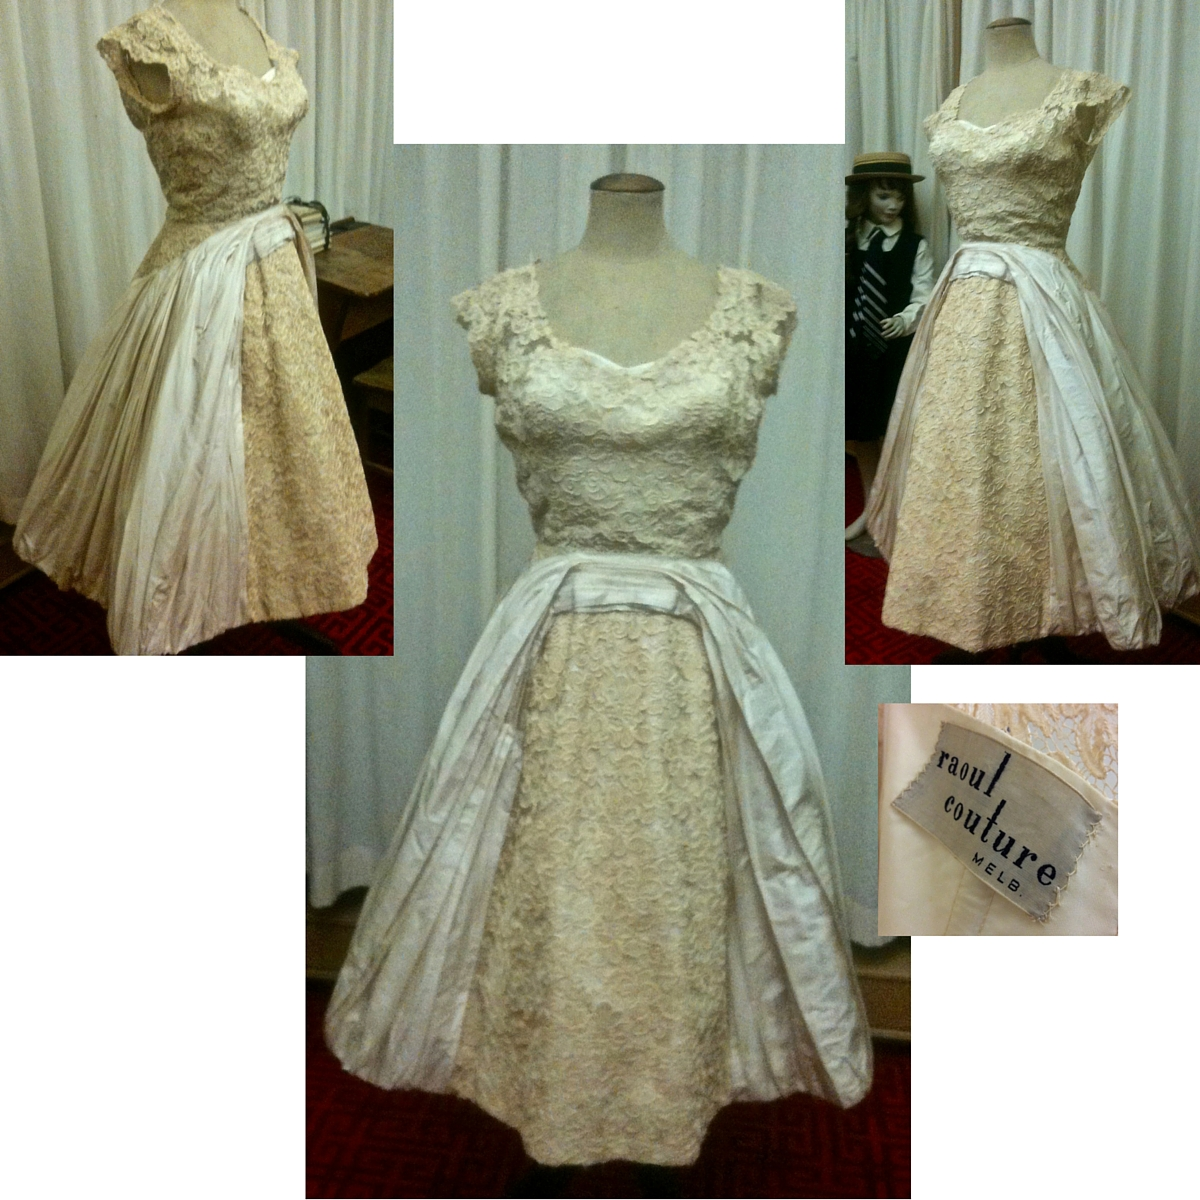 raoul couture dress